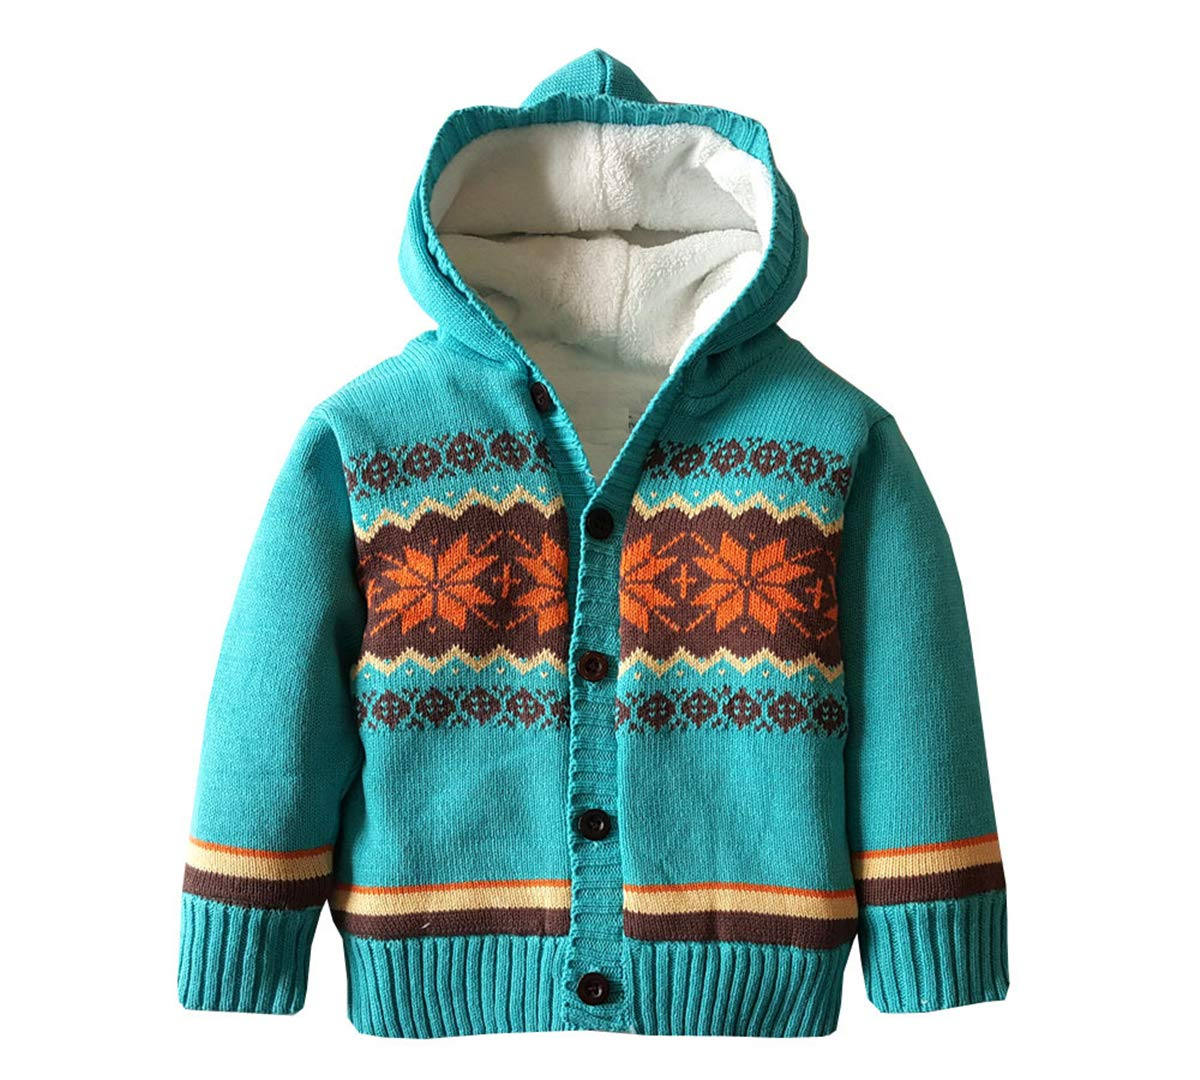 Baby Boys Hoodies Sweater Toddler Girls Knit Cardigan Outerwear Blue by Dealone